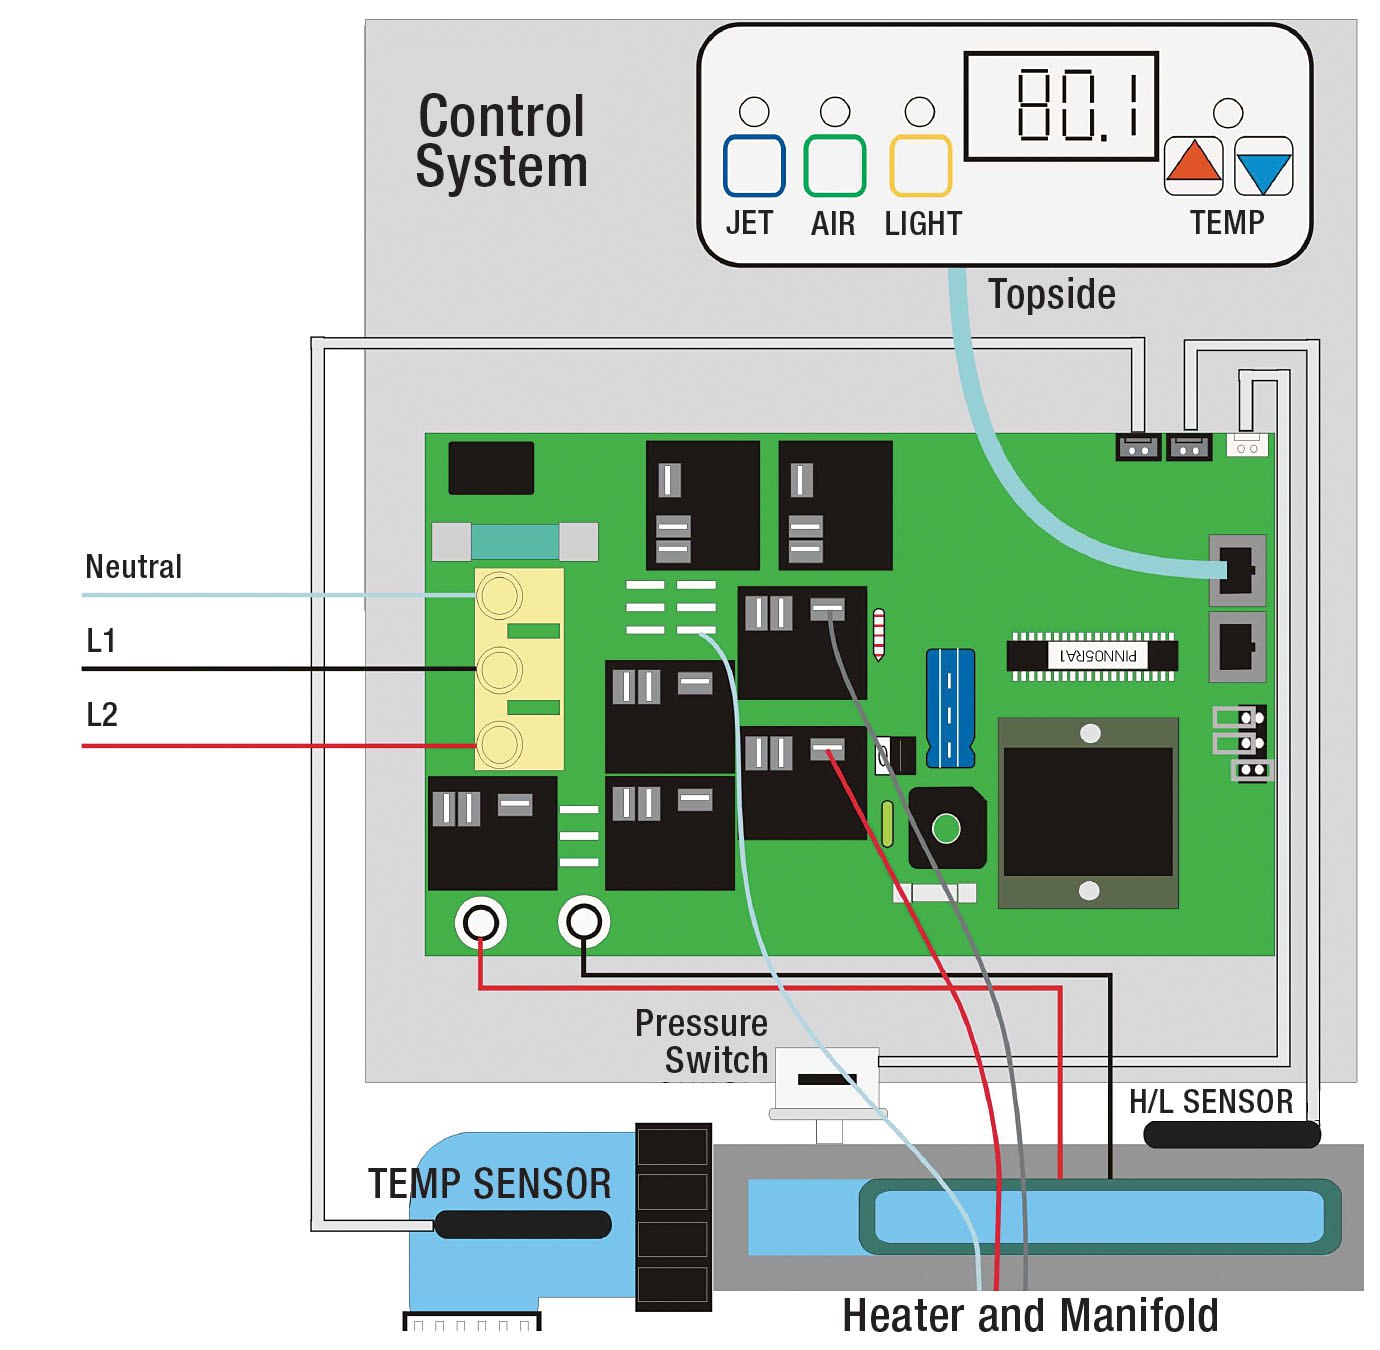 hight resolution of electronic control basics for hot tubs